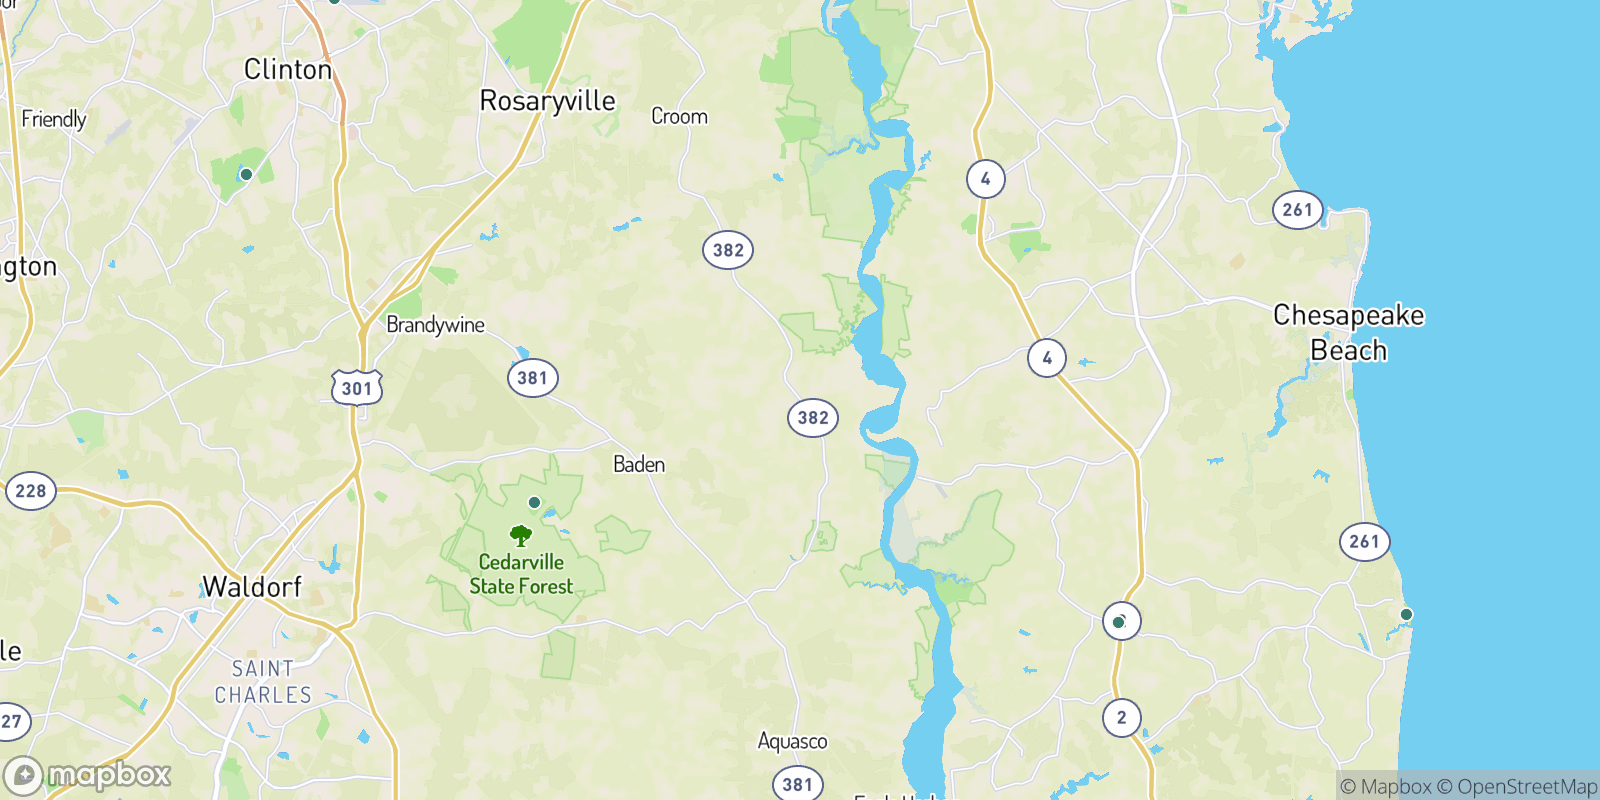 The best camping near Bald Eagle, Maryland